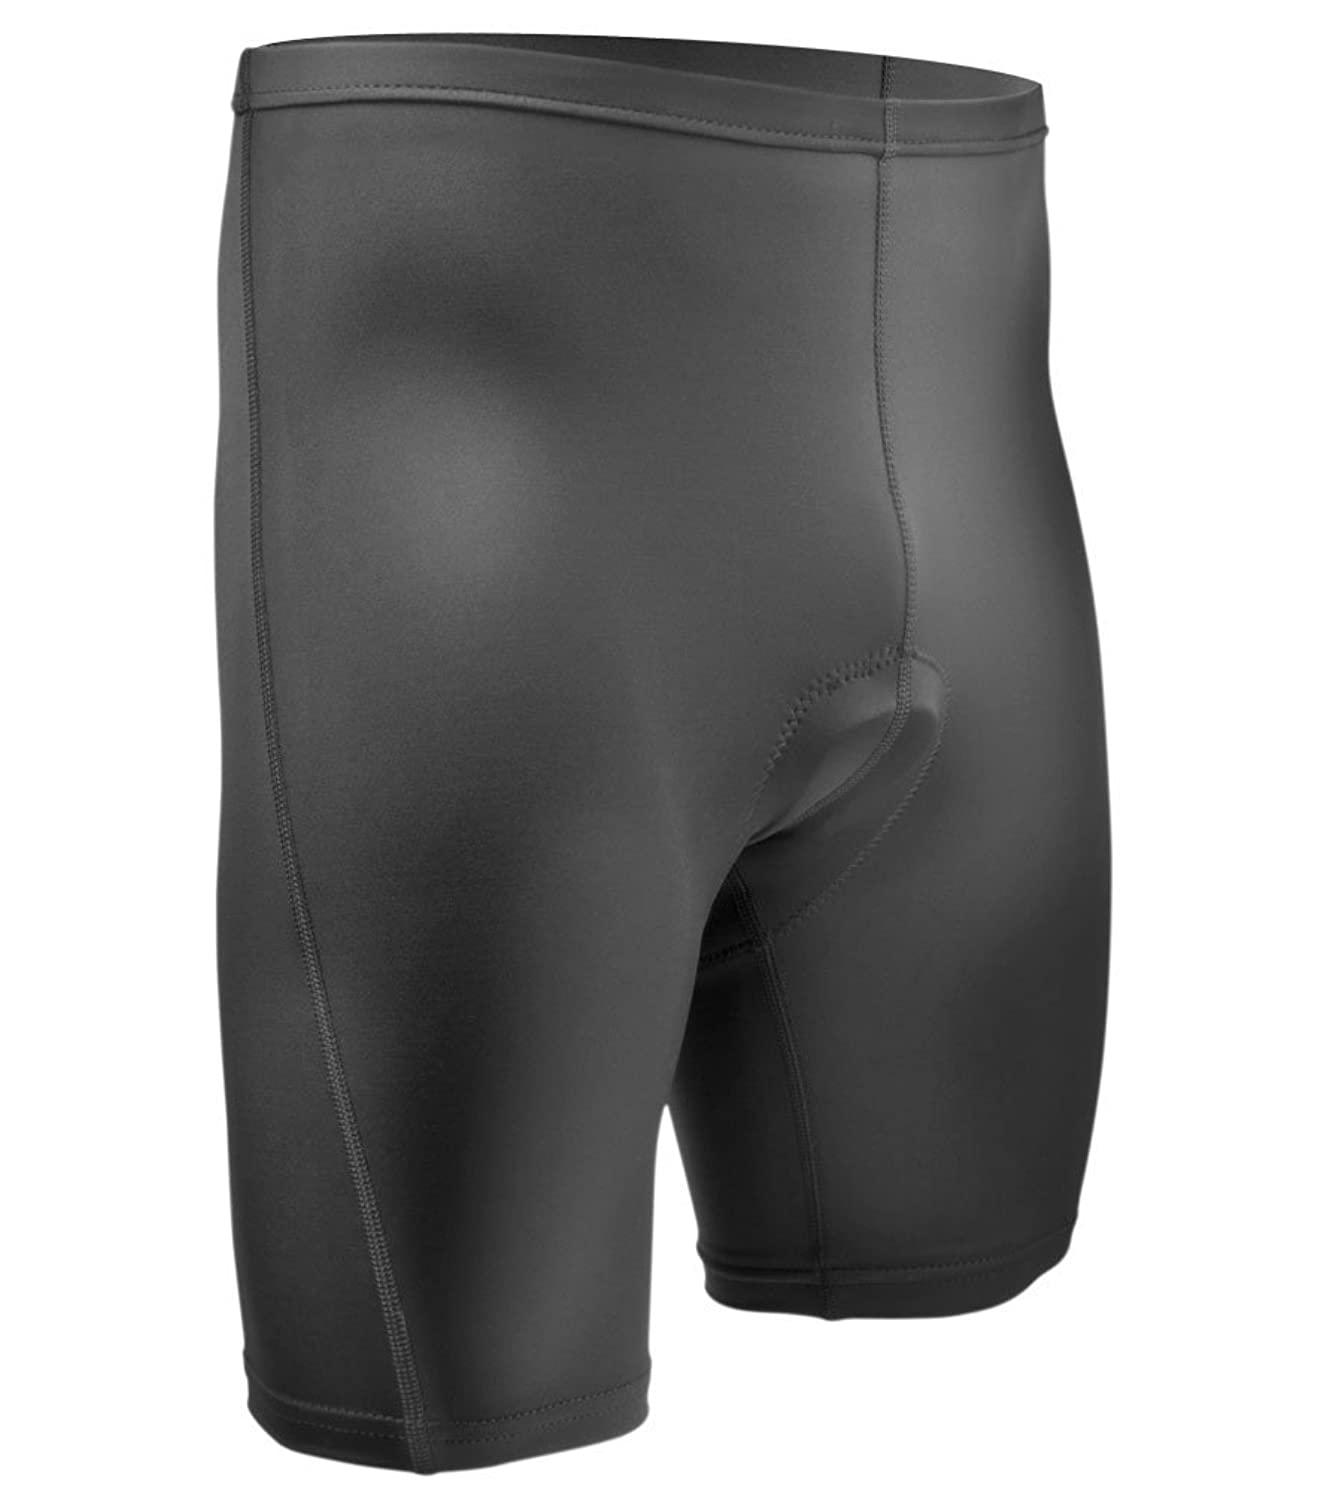 Men's Padded Classic Bike Shorts Cycling Bicycle BikingMade in USA